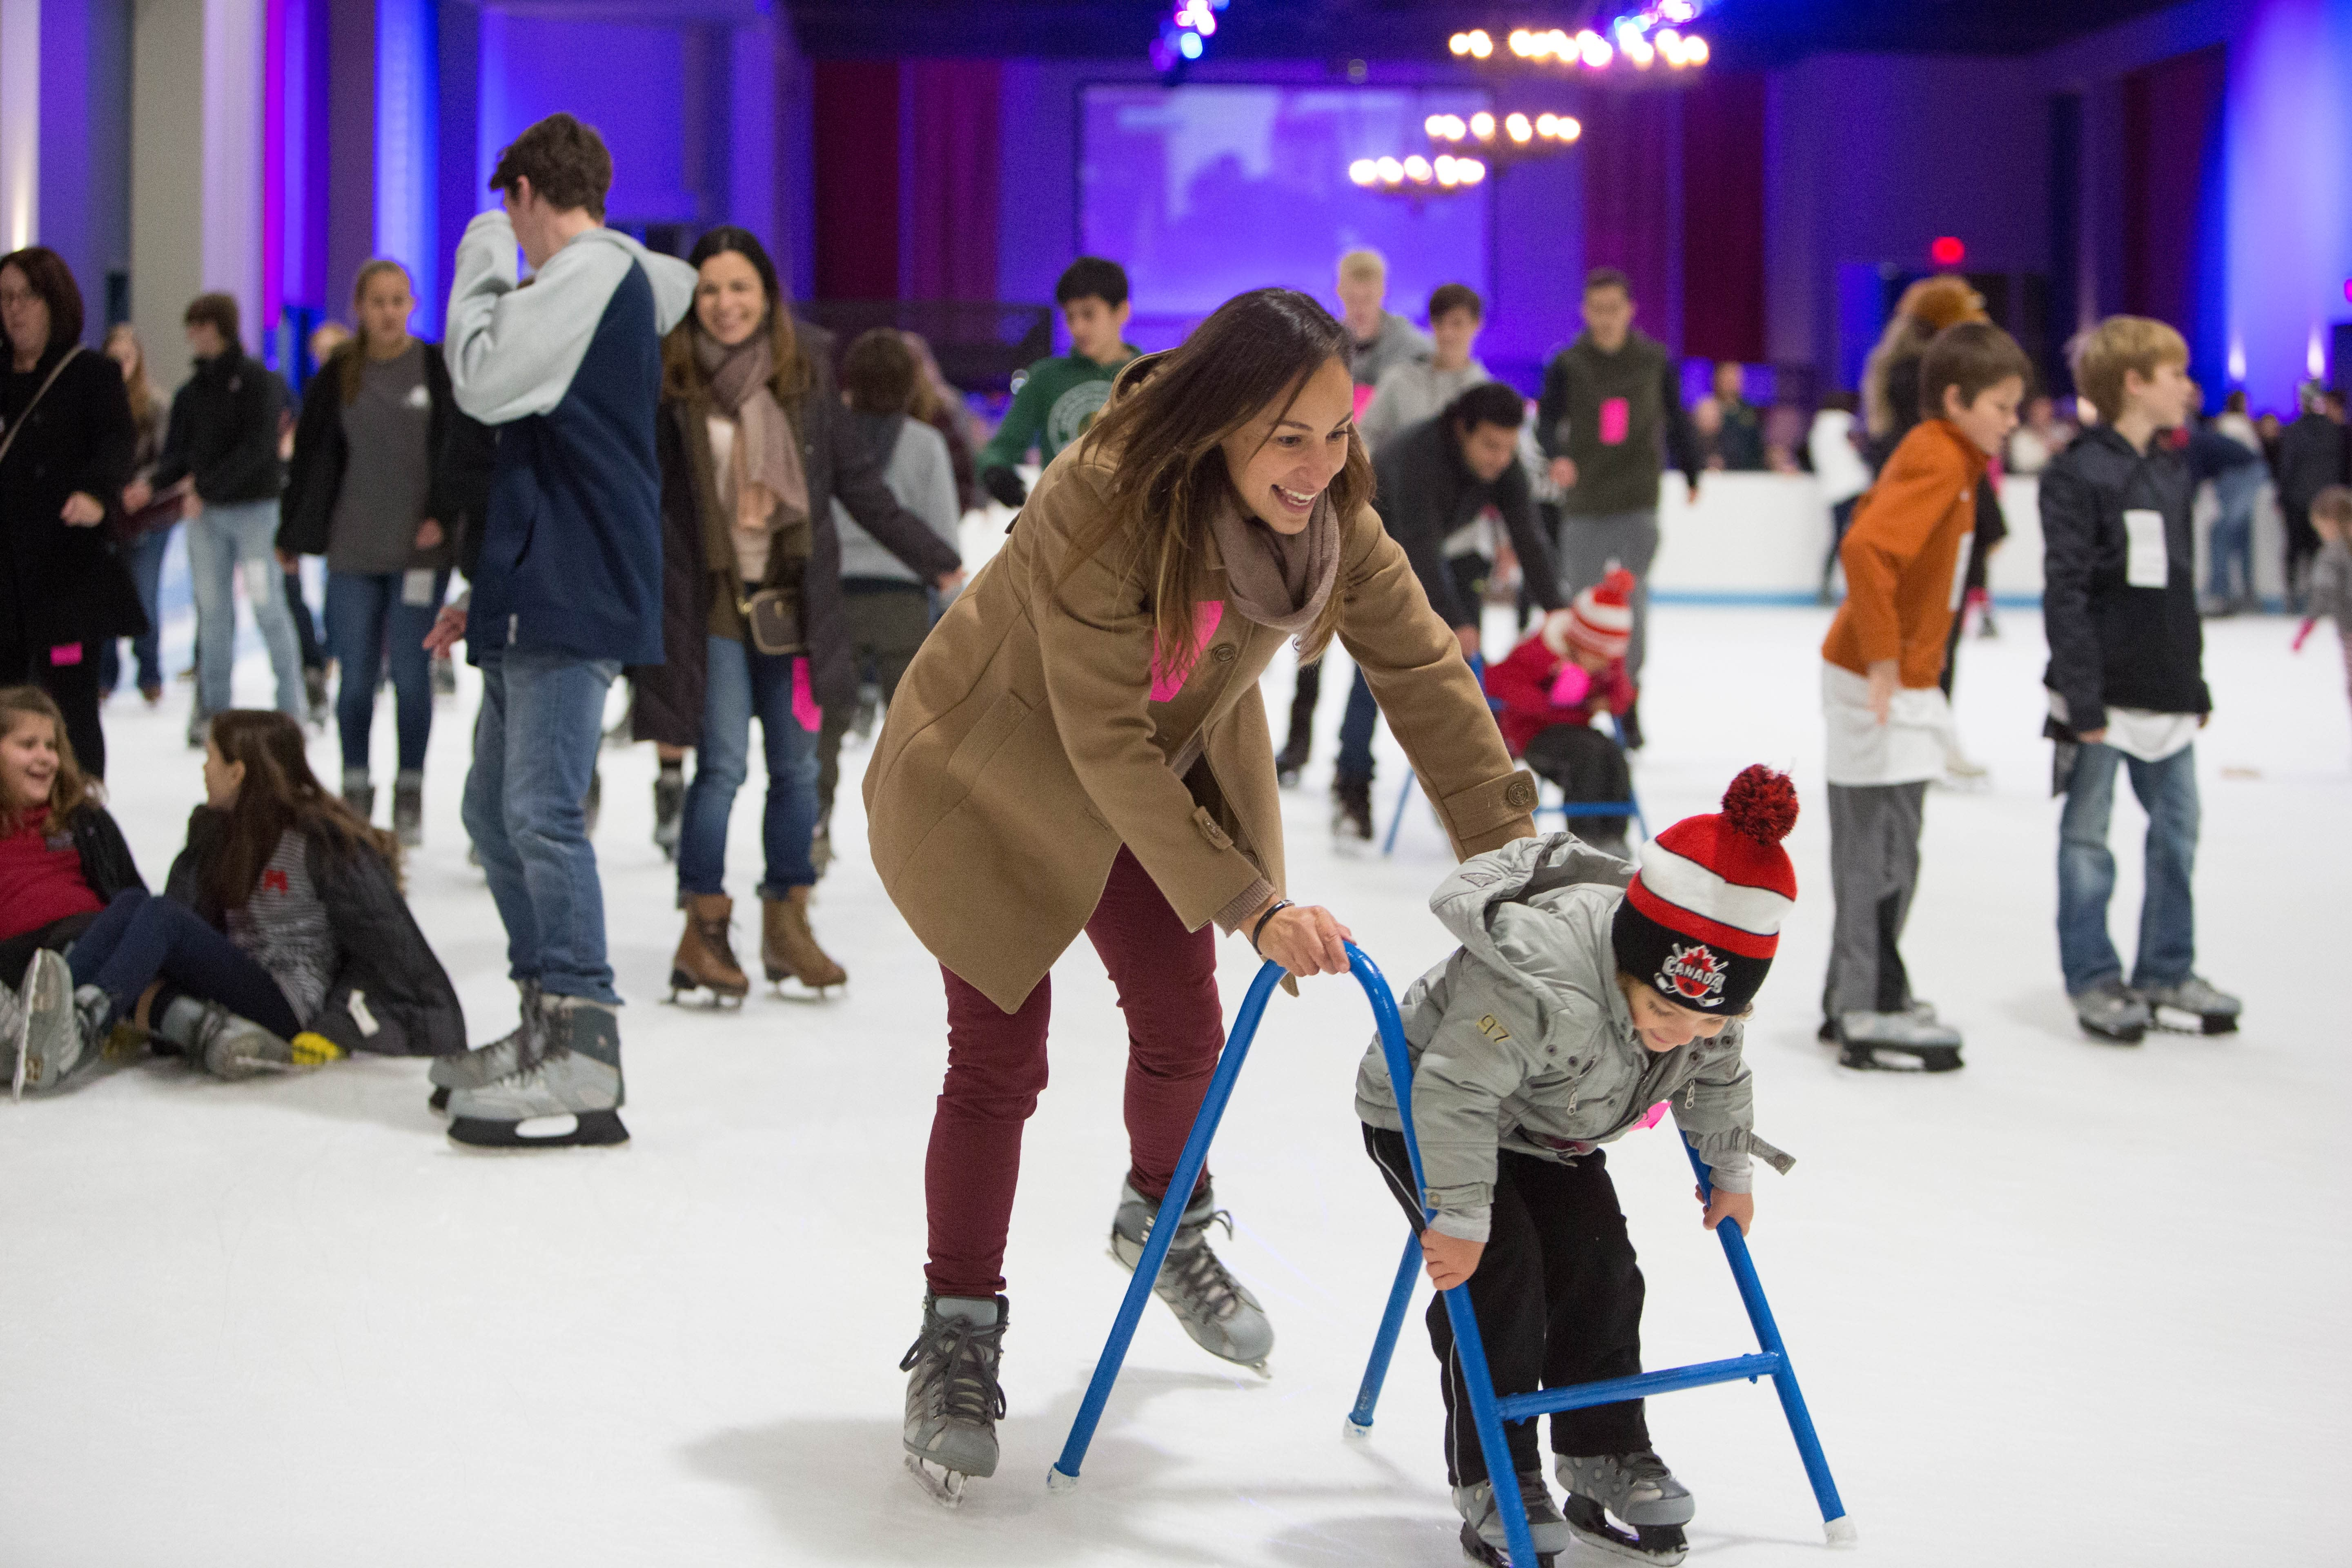 The Woodlands Ice Rink